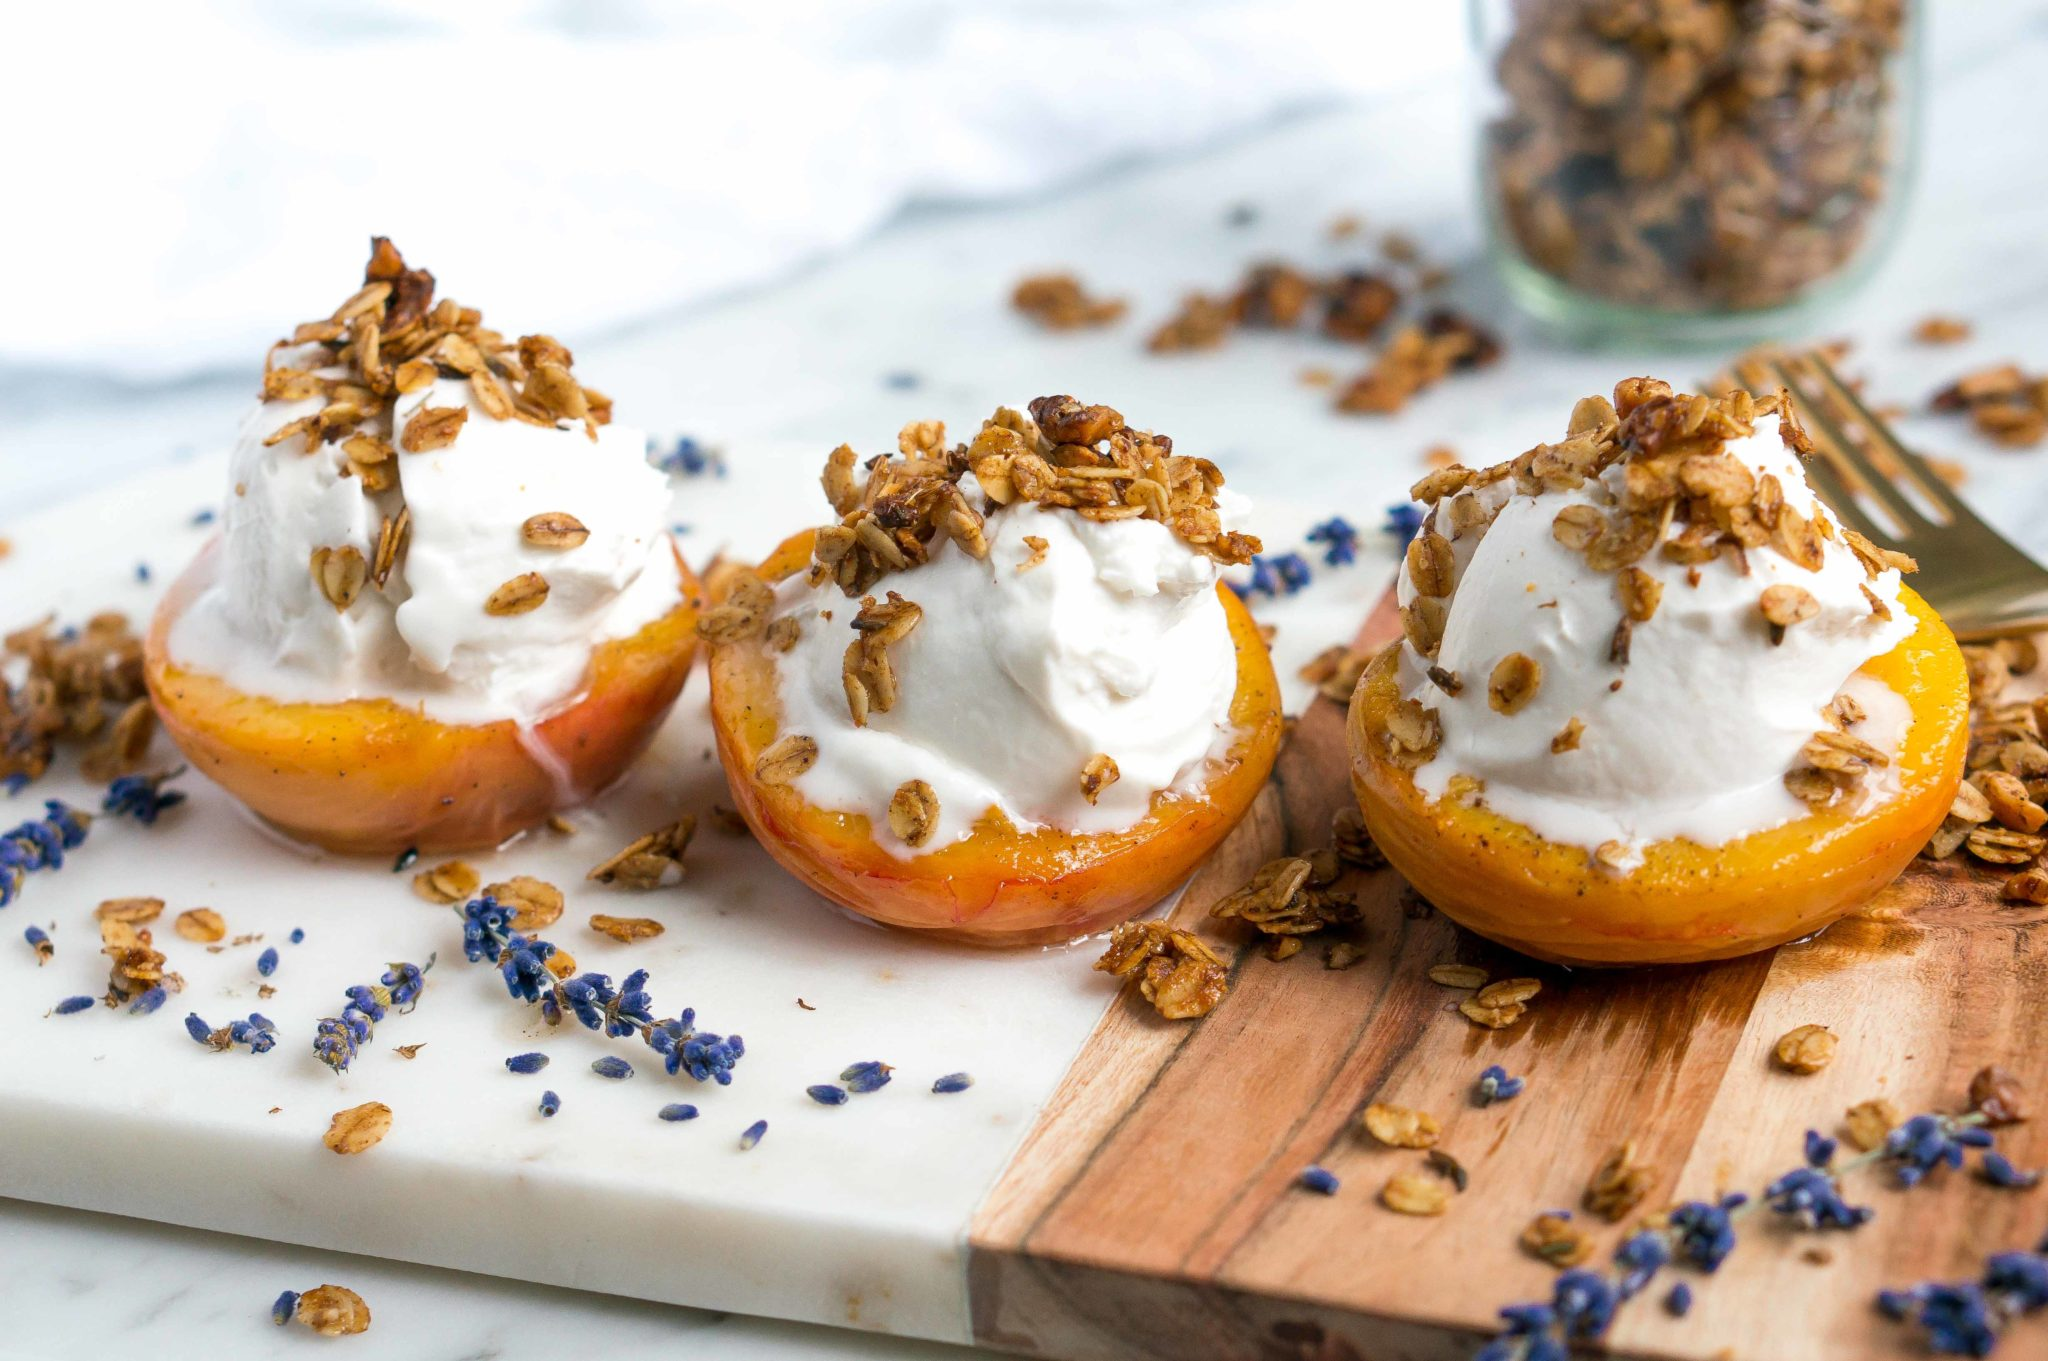 Roasted Peaches with Coconut Yogurt & Cinnamon Lavender Granola (Gluten Free, Vegan, Refined Sugar Free)